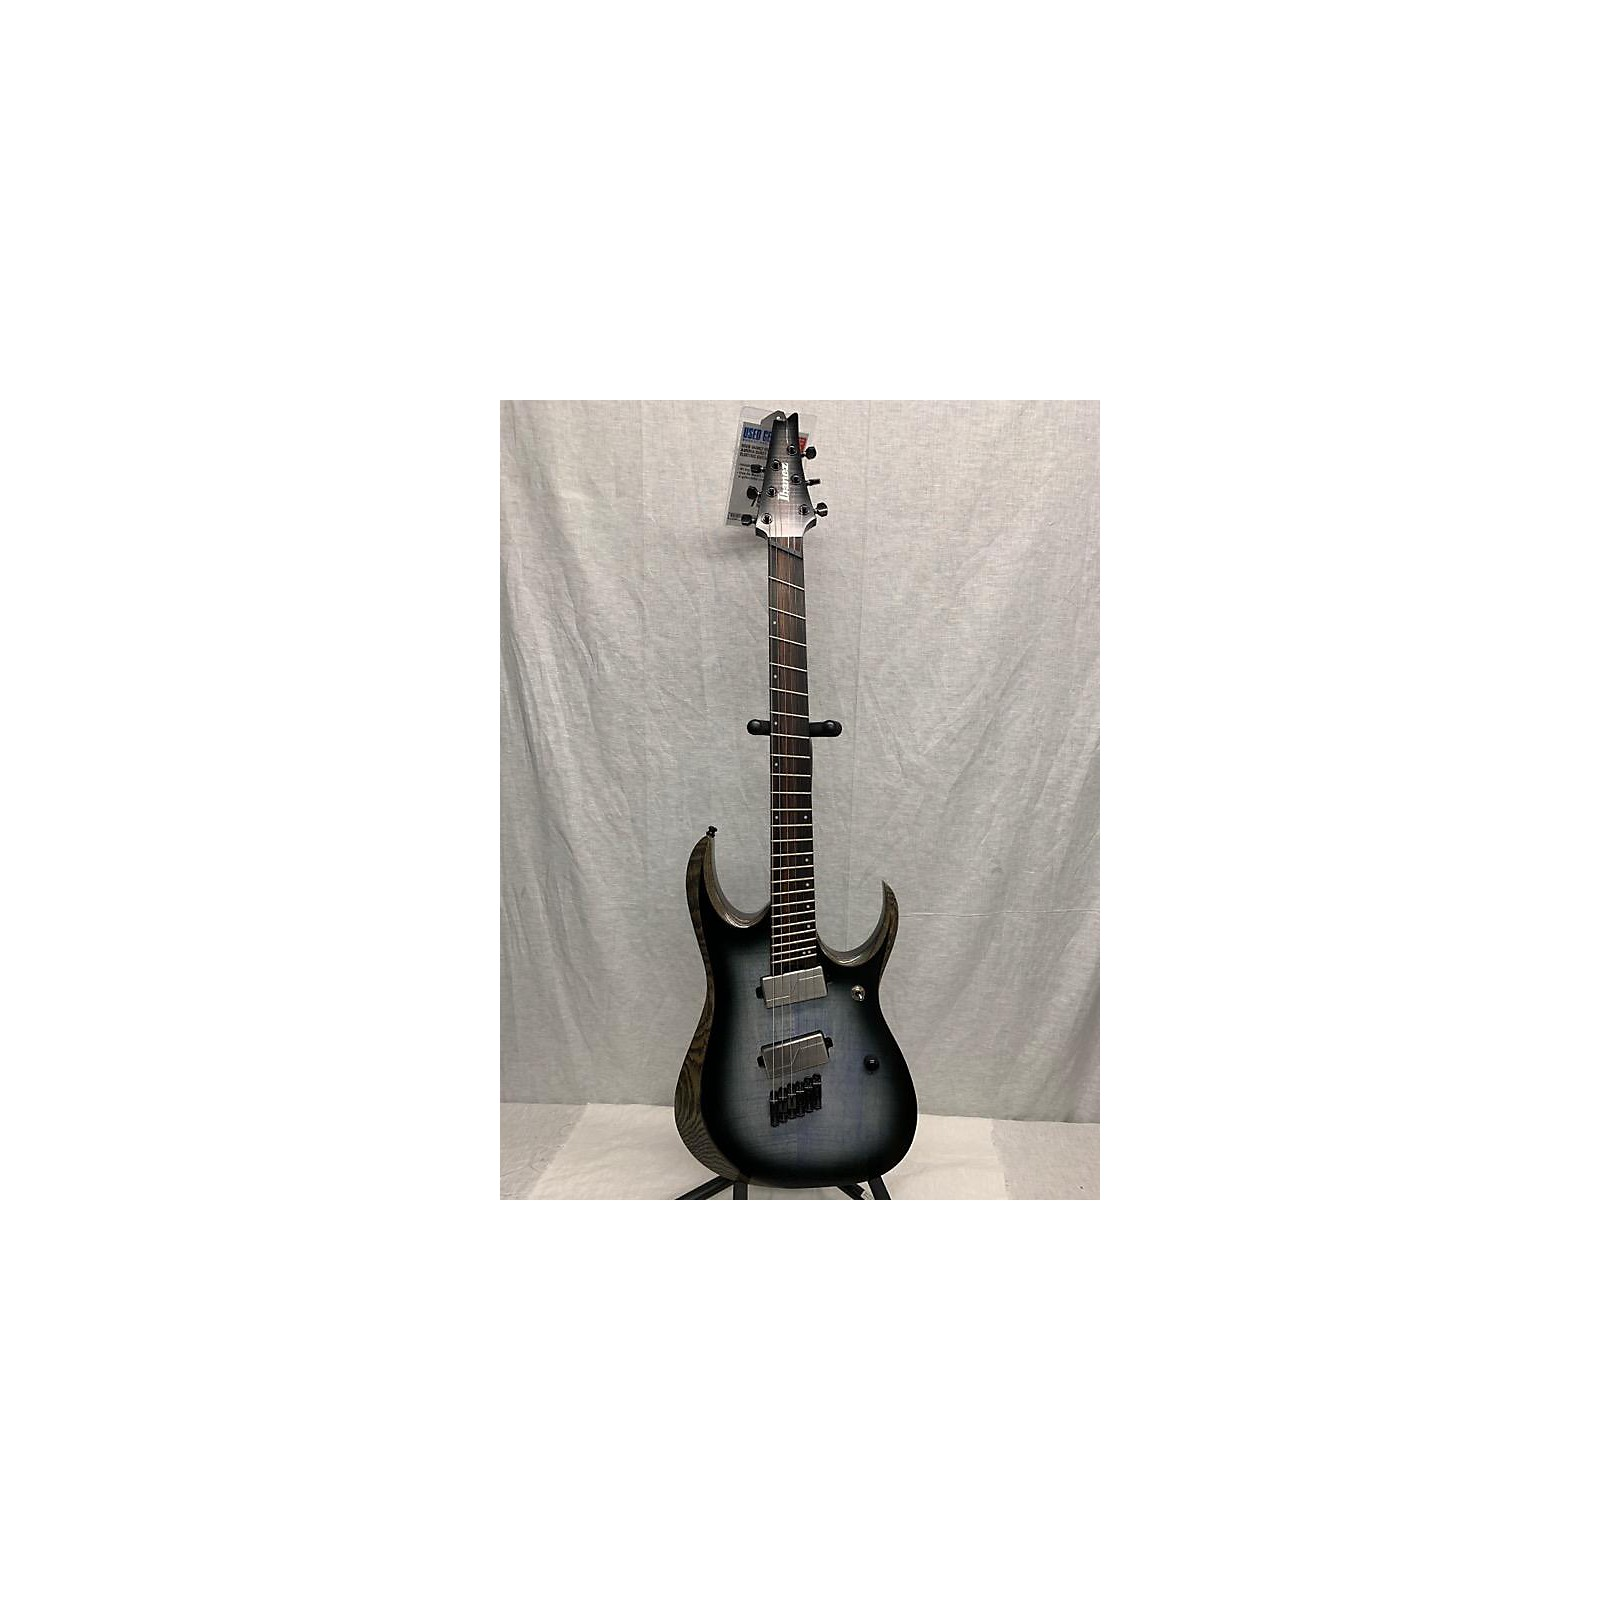 Ibanez Rgd61alms Solid Body Electric Guitar